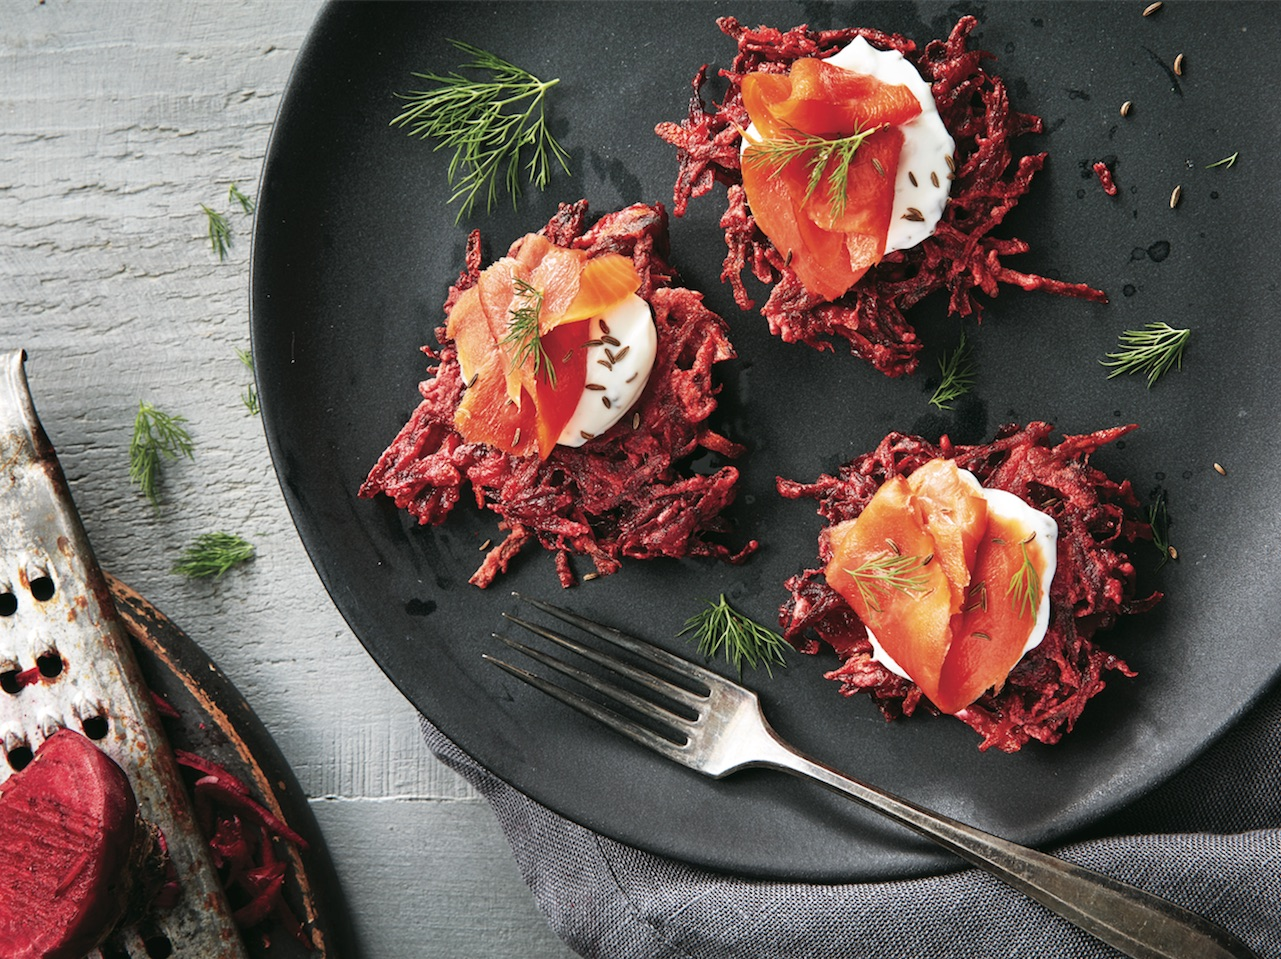 Beet recipes - Beet latkes with sour cream smoked salmon and dill